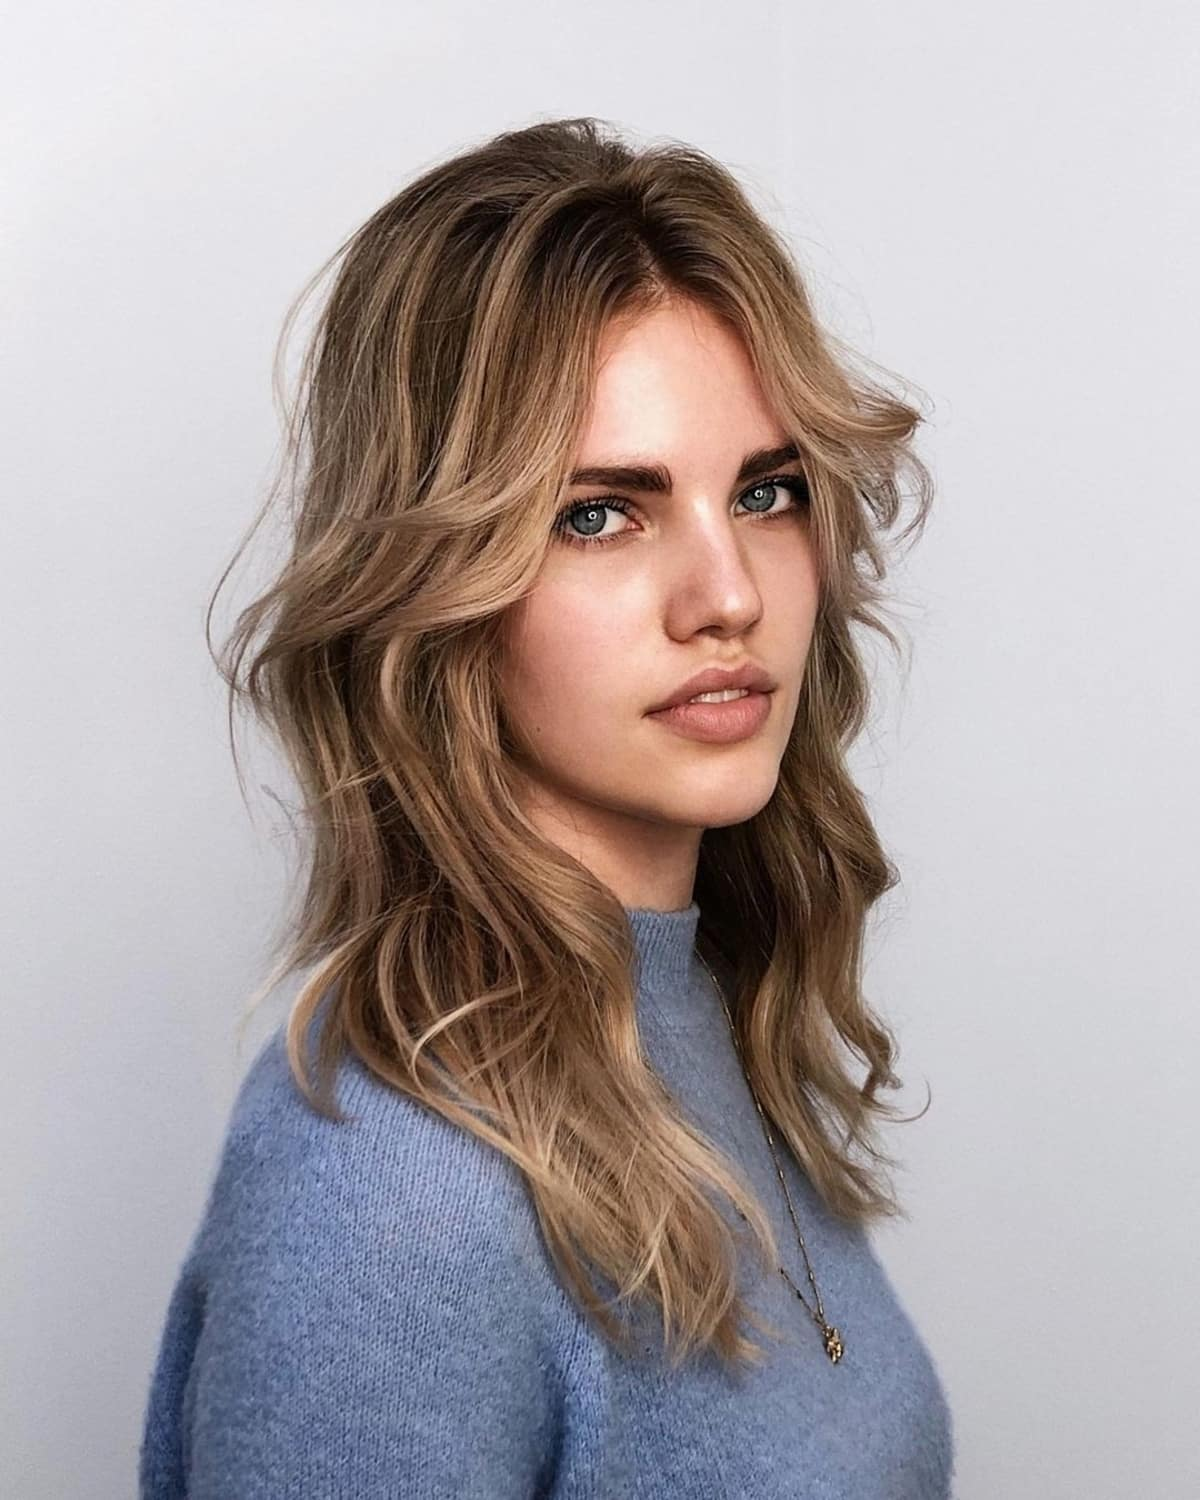 21 Curtain Bangs to Flatter Every Face Shape and Hair Type (2021 Trend Alert)